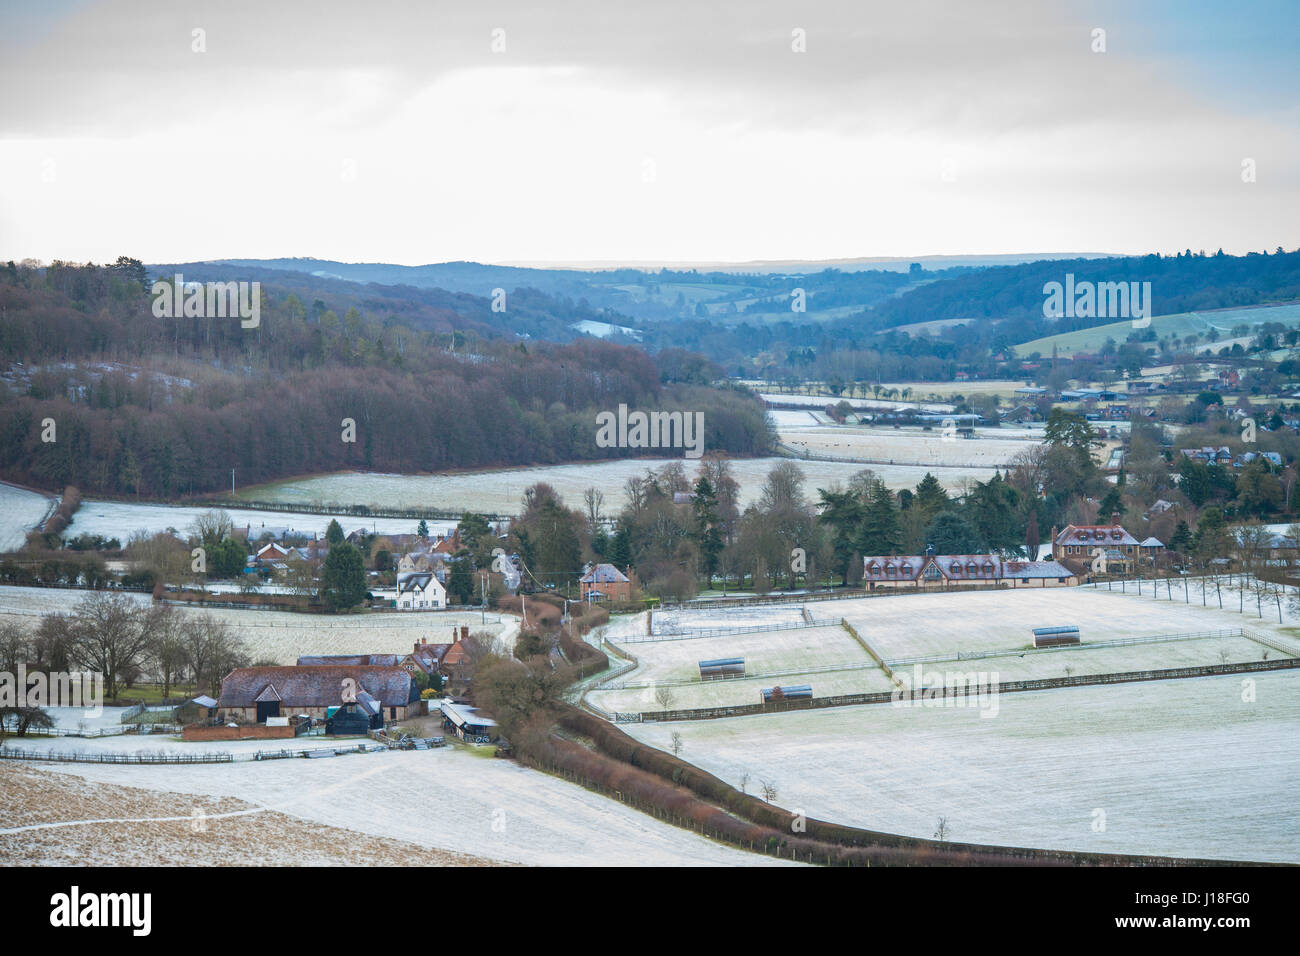 Hambleden Valley, covered in a light dusting of snow, viewed from the North looking towards the Thames Valley - Stock Image